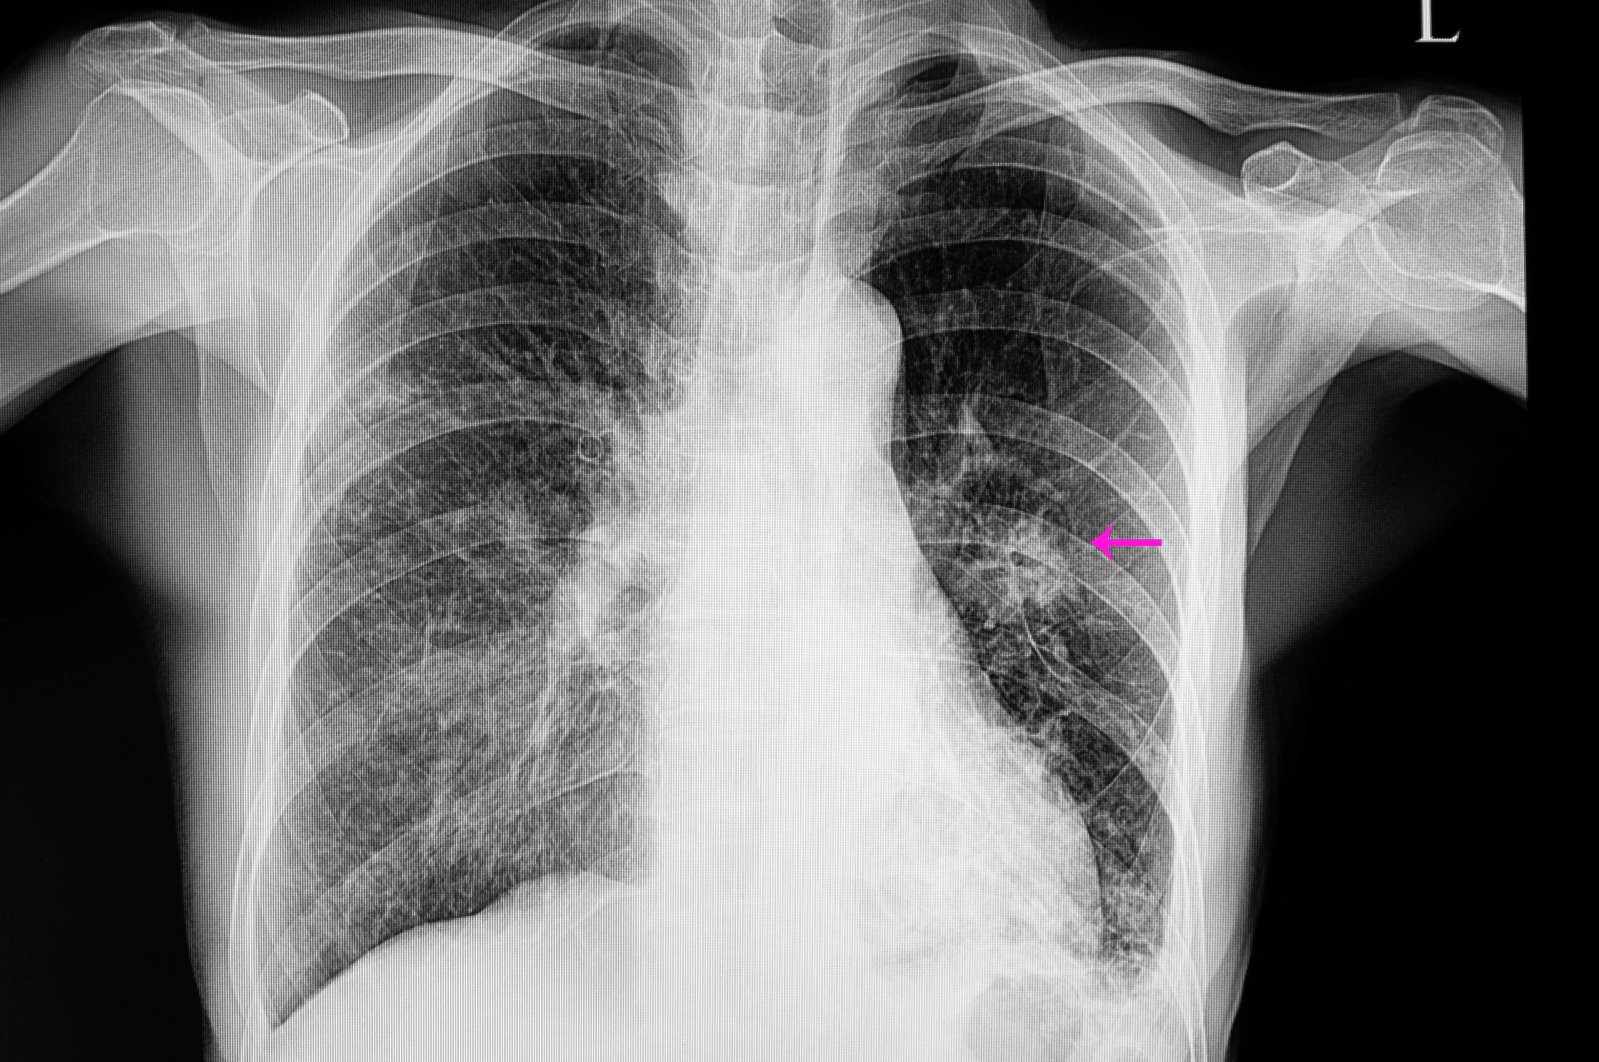 A chest X-ray shows a patient with pneumonia and a lung nodule. (Shutterstock Photo)